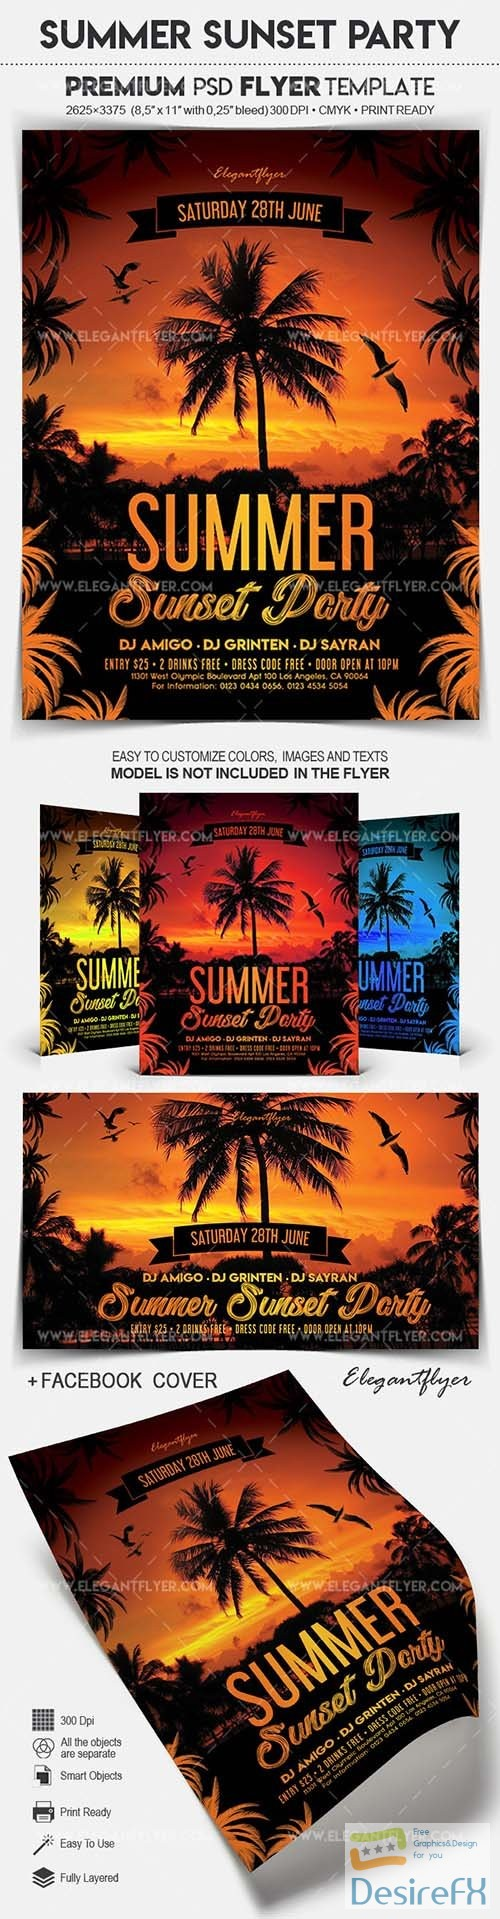 layered-psd - Summer Sunset Party – Flyer PSD Template